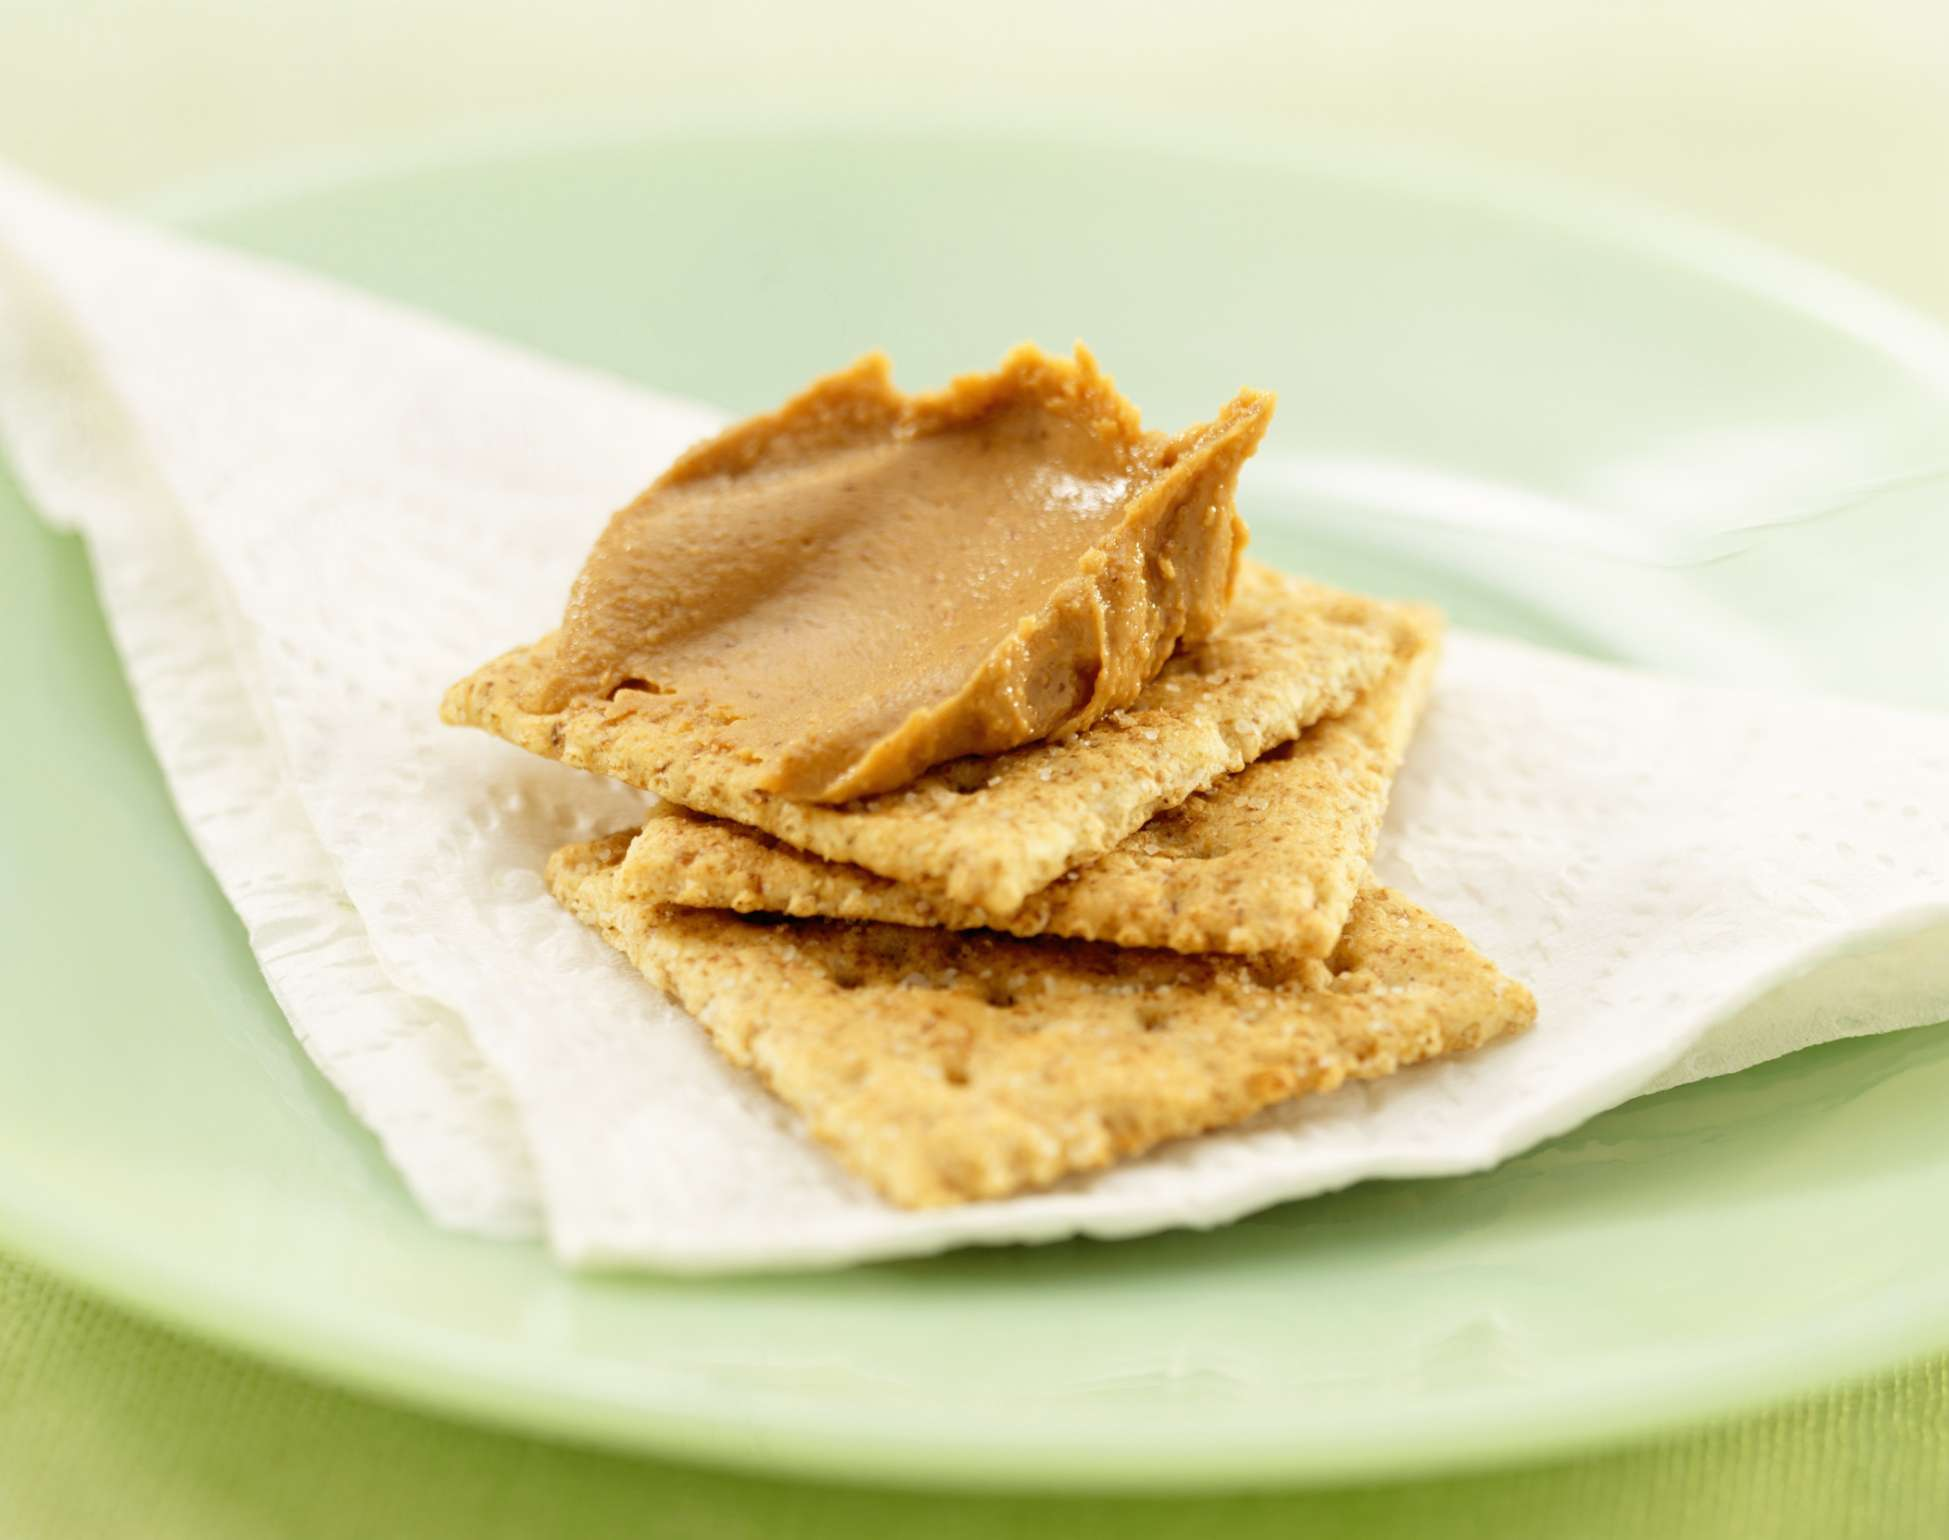 Crackers with peanut butter on them